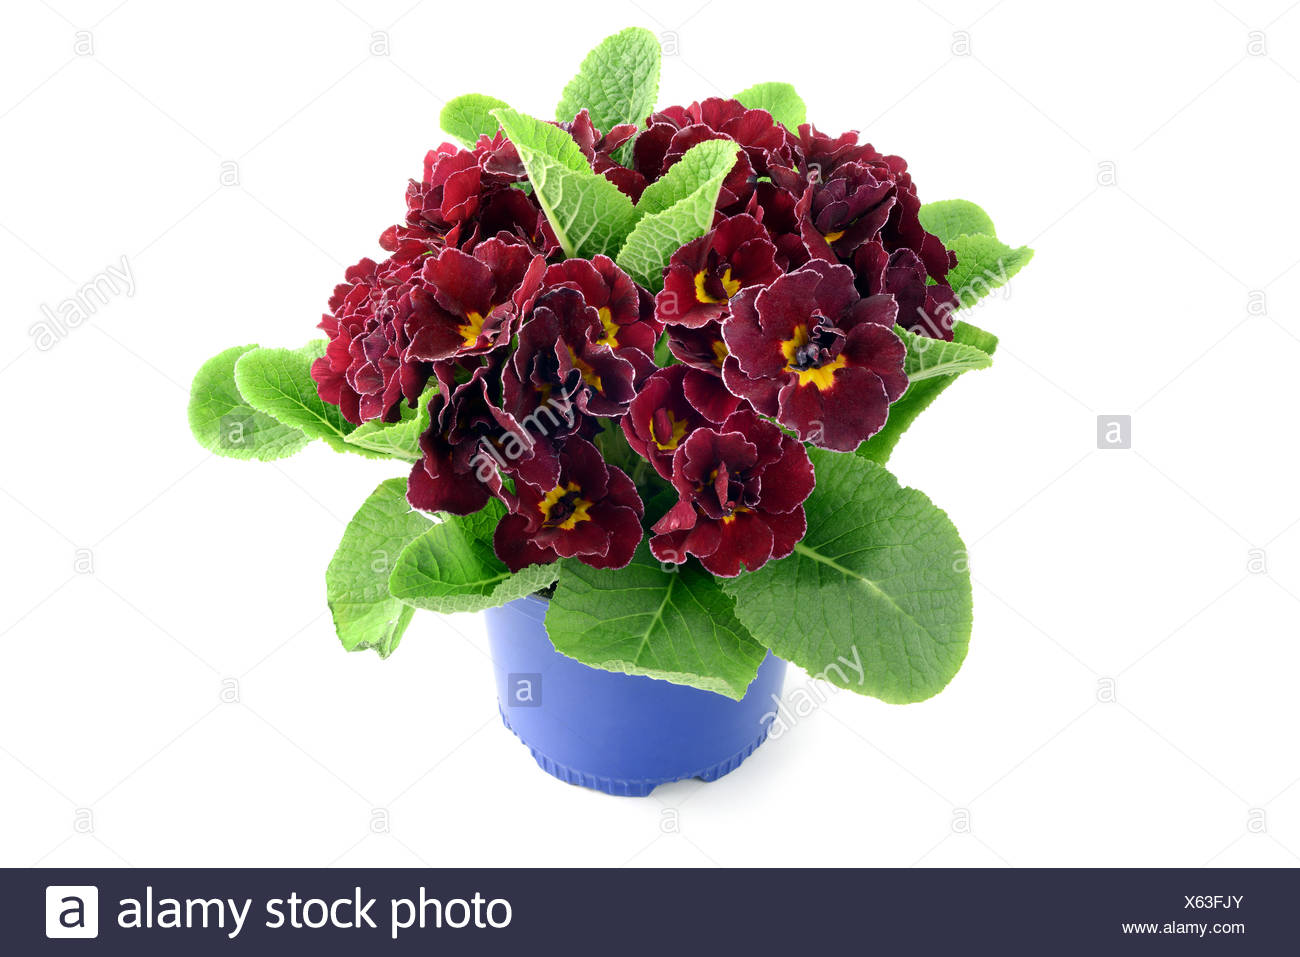 Potted Flowers White Background Stock Photos Potted Flowers White